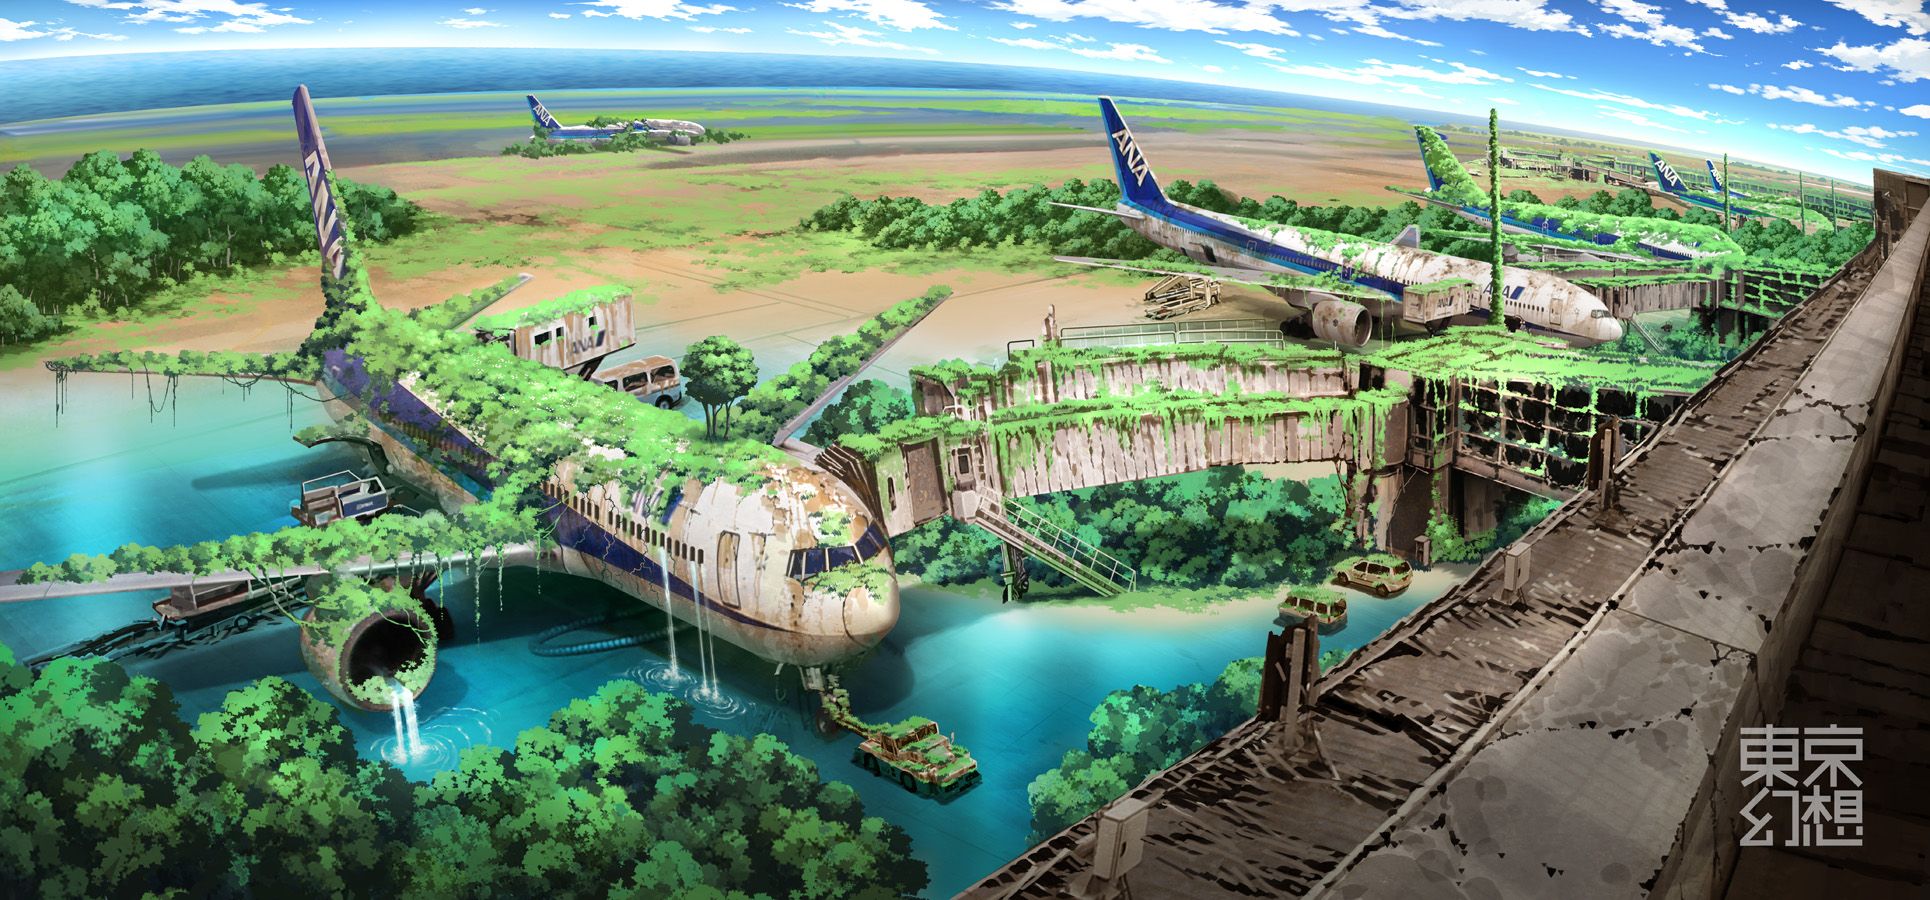 Fantascienza - Post-Apocalisse  Forest Grass Water Jet Airplane Airport Sfondo